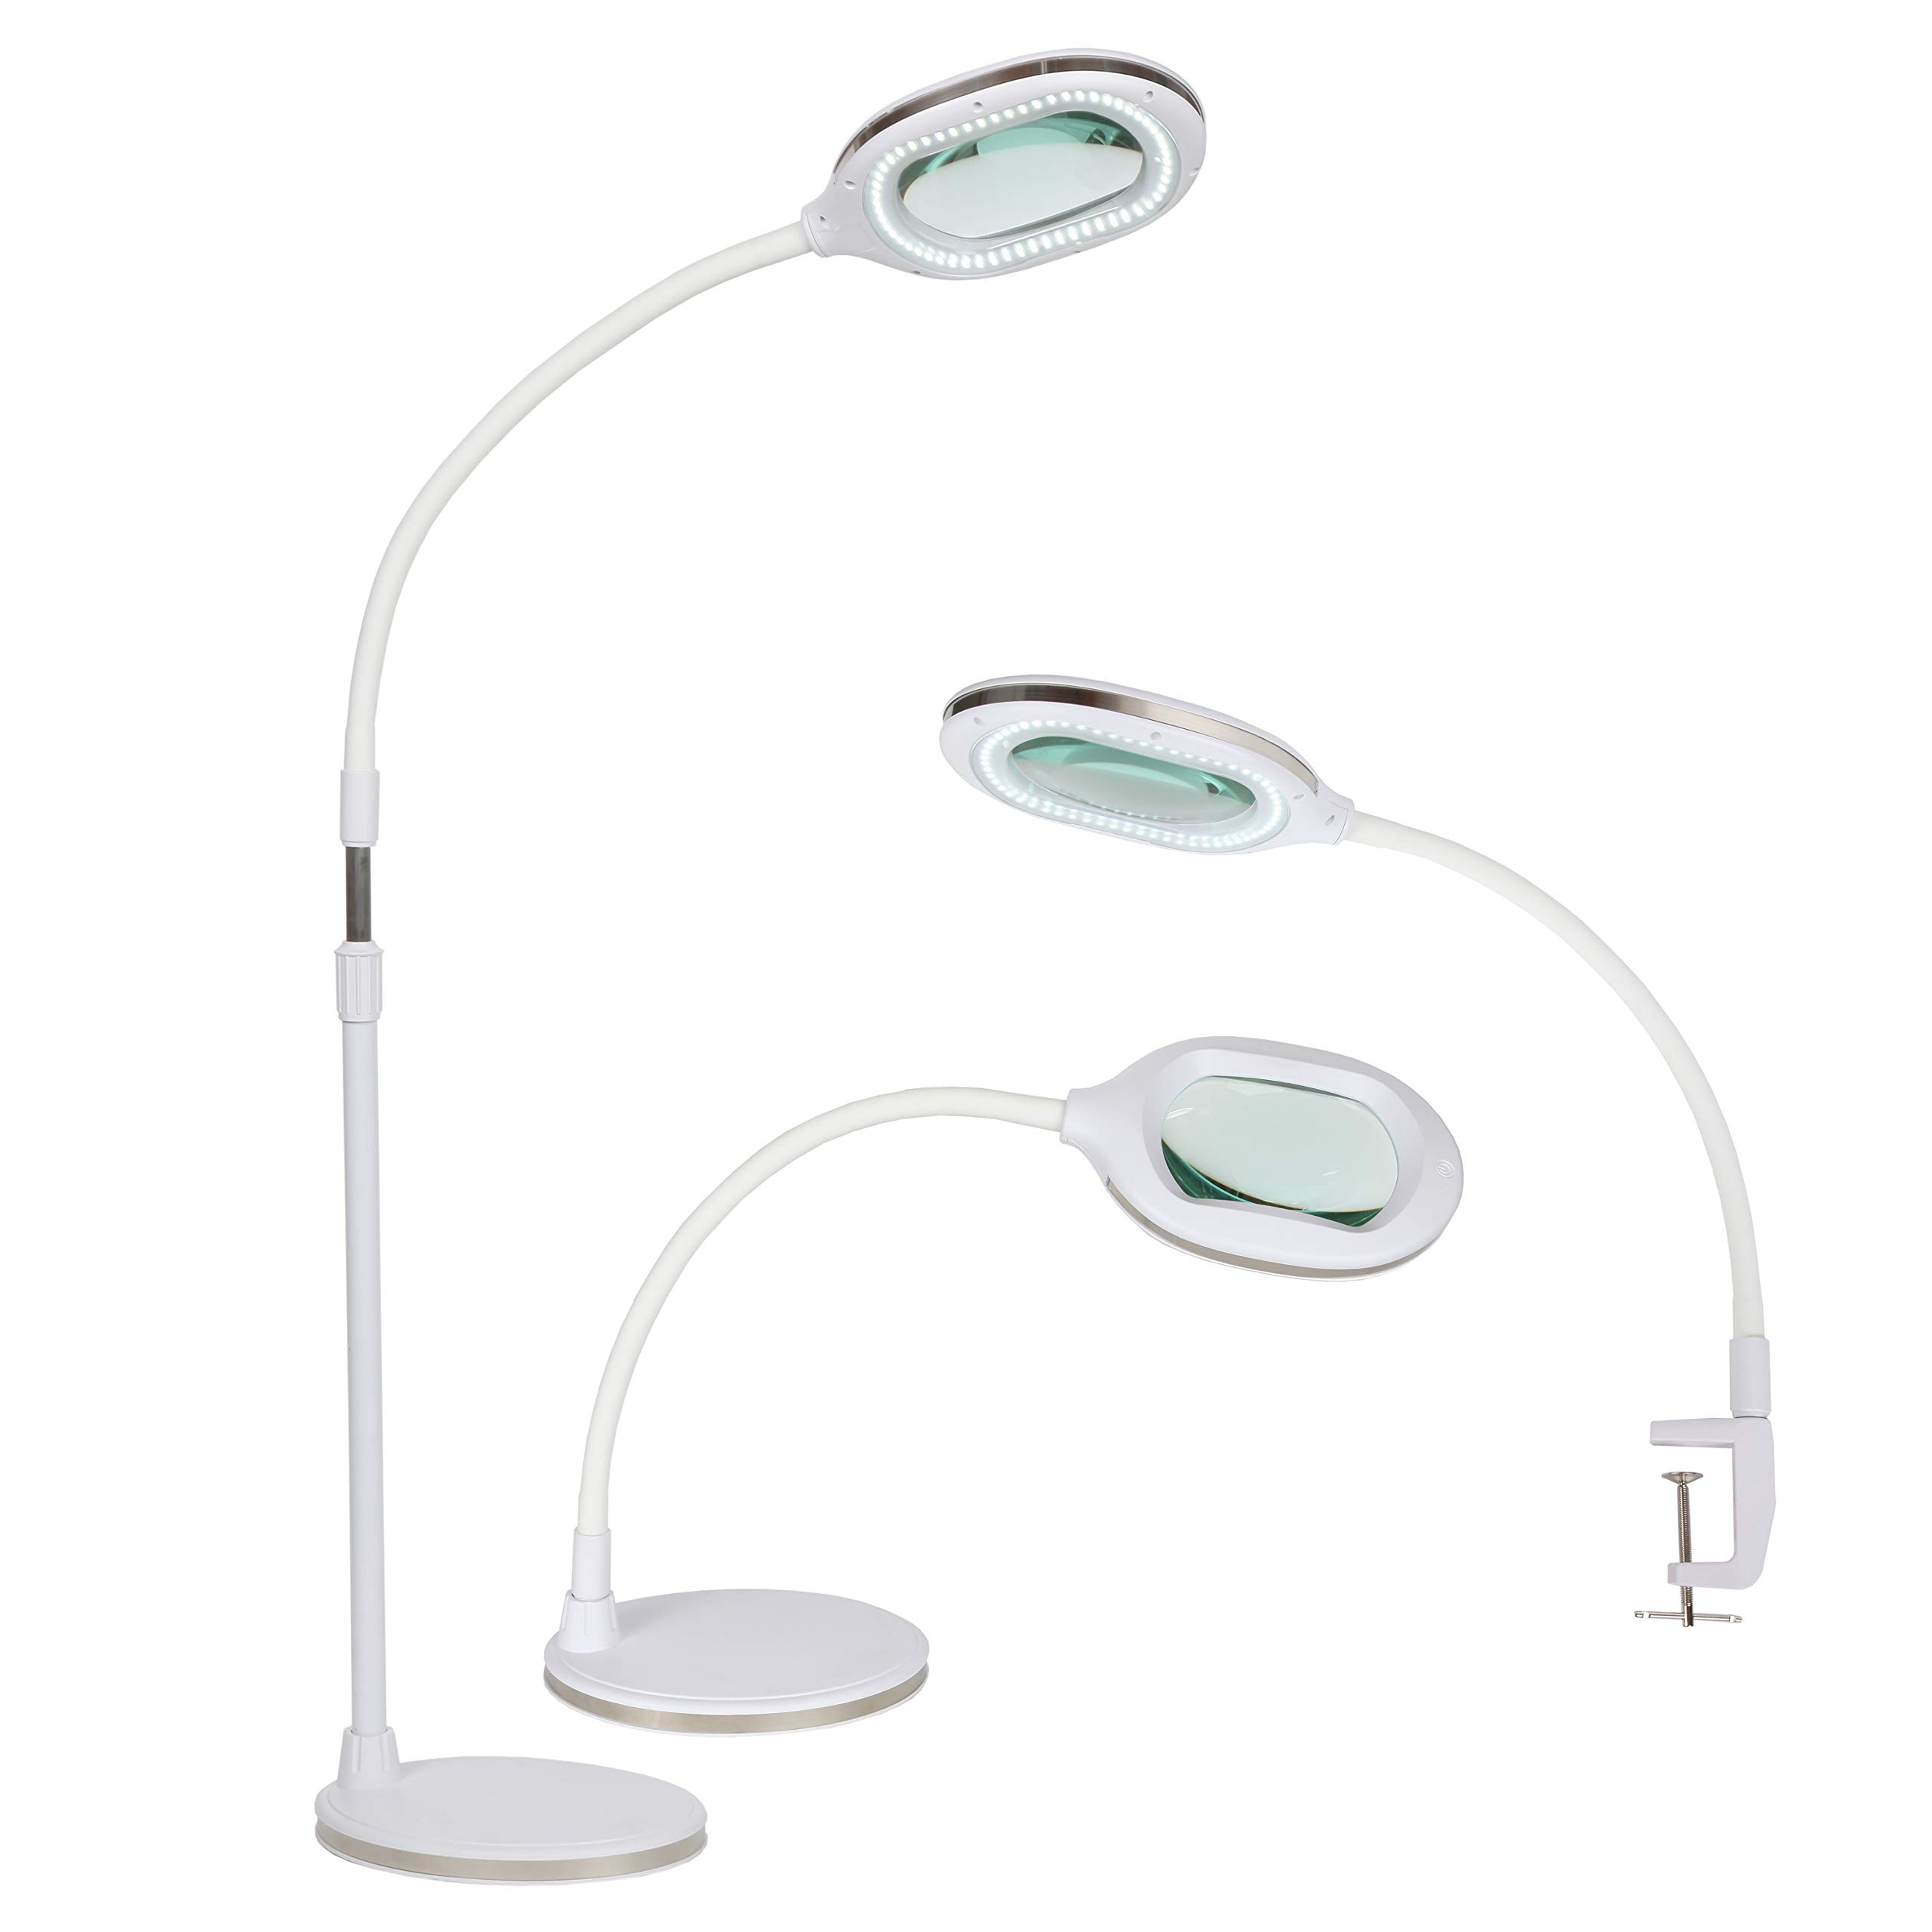 Brightech Lightview Pro 3 in 1 LED Magnifying Glass Floor Lamp- Use as a Table, Floor, or Desk Lamp - Real Diopter Glass Lens – Height Adjustable Gooseneck Standing Light – White by Brightech (Image #2)